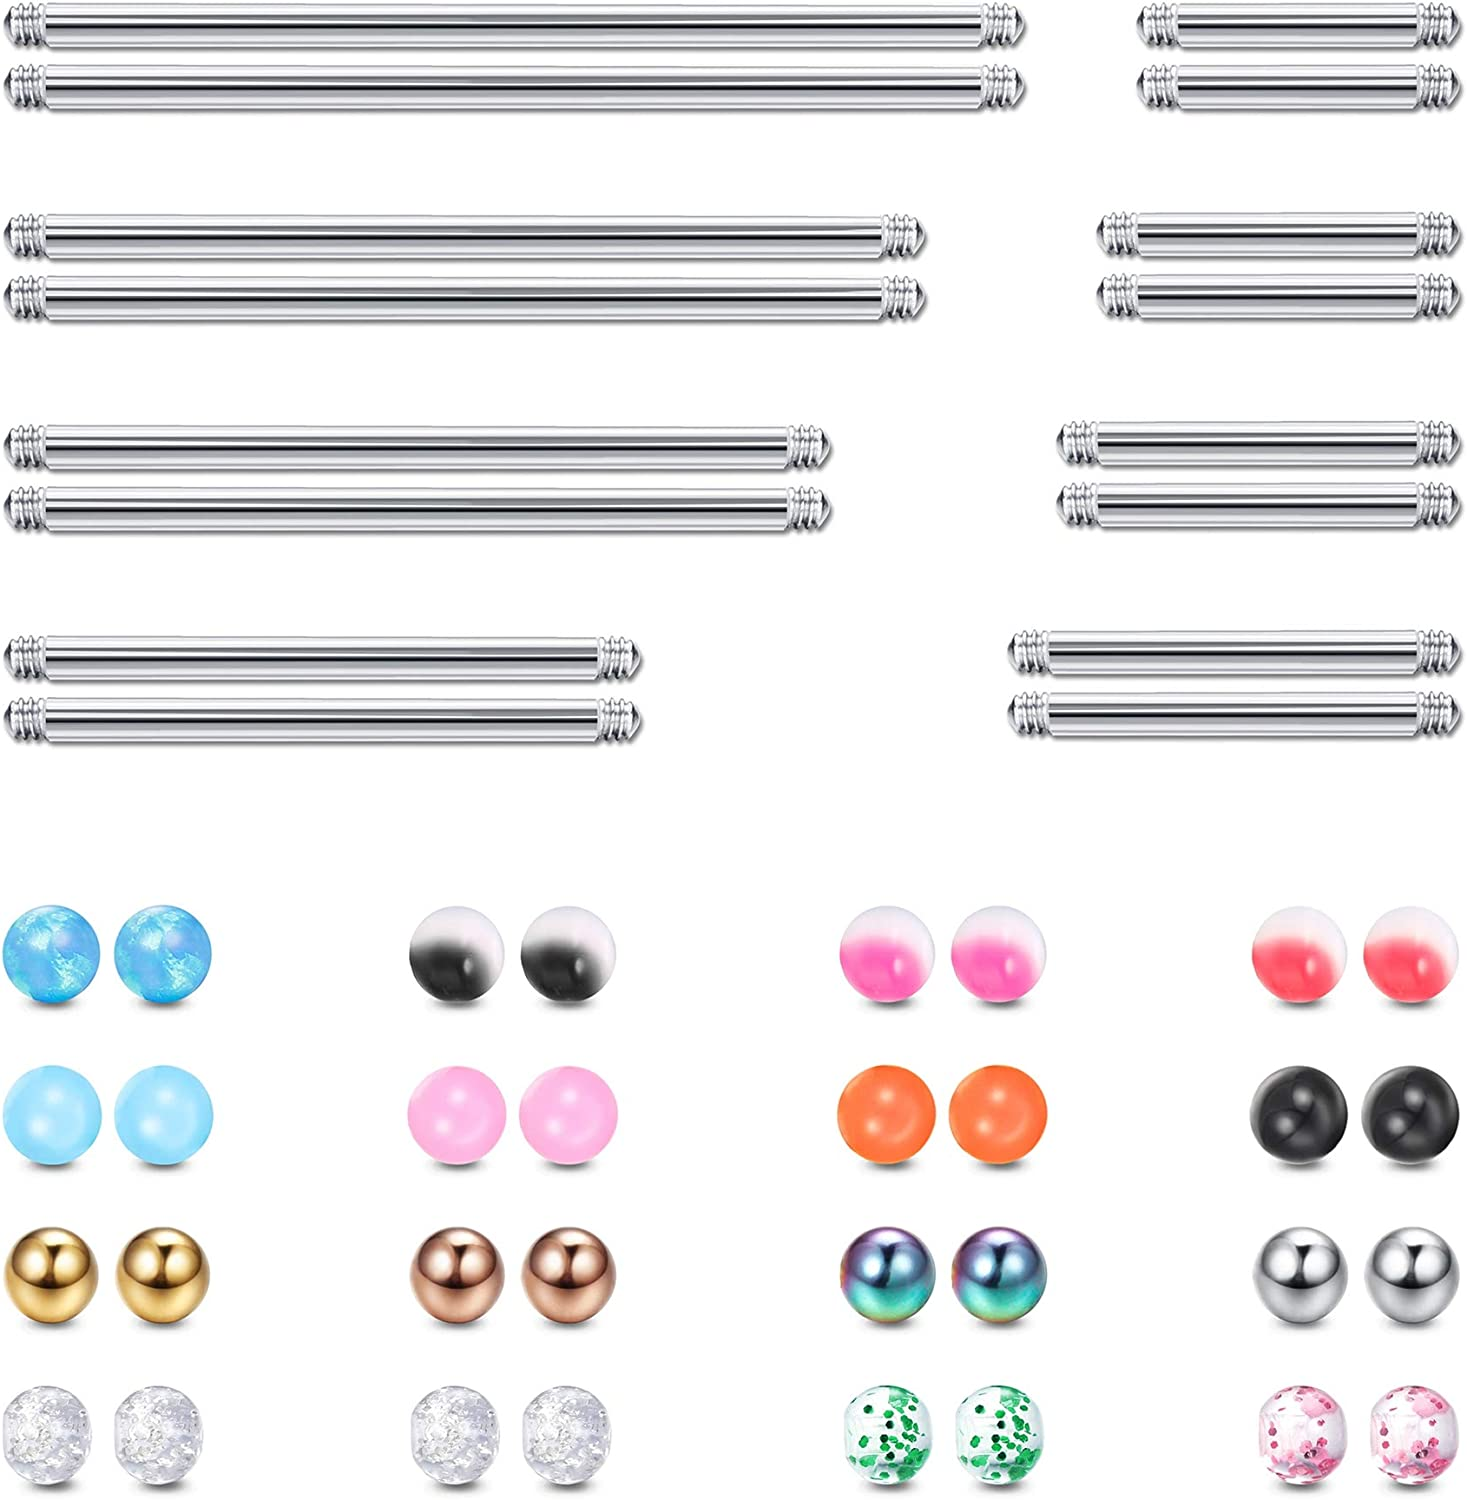 YADOCA 16 PCS 14G Tongue Rings for Women Men Industrial Barbell Helix Cartilage Earrings Stainless Steel Straight Nipple Body Piercing Jewelry 12-38MM With 32 PCS Replacement Balls